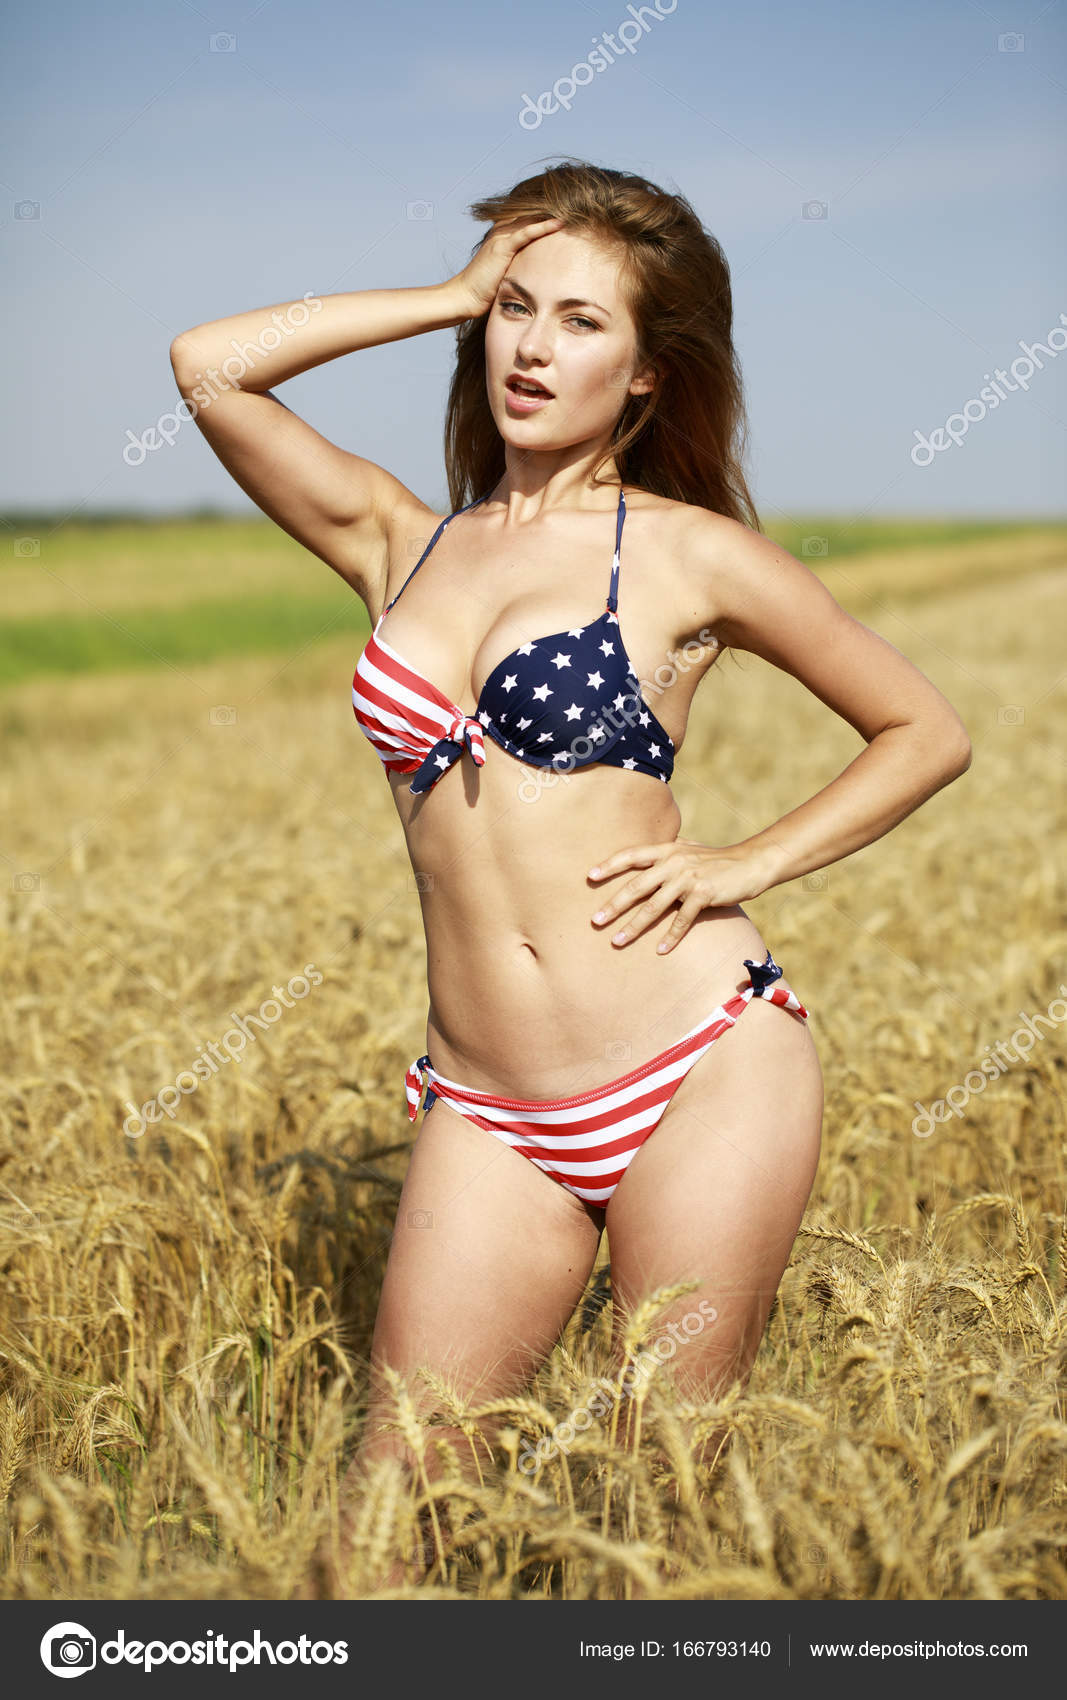 044f7fe584076 Back view, beautiful blonde woman in sexy American flag bikini in a wheat  field — Photo by ...